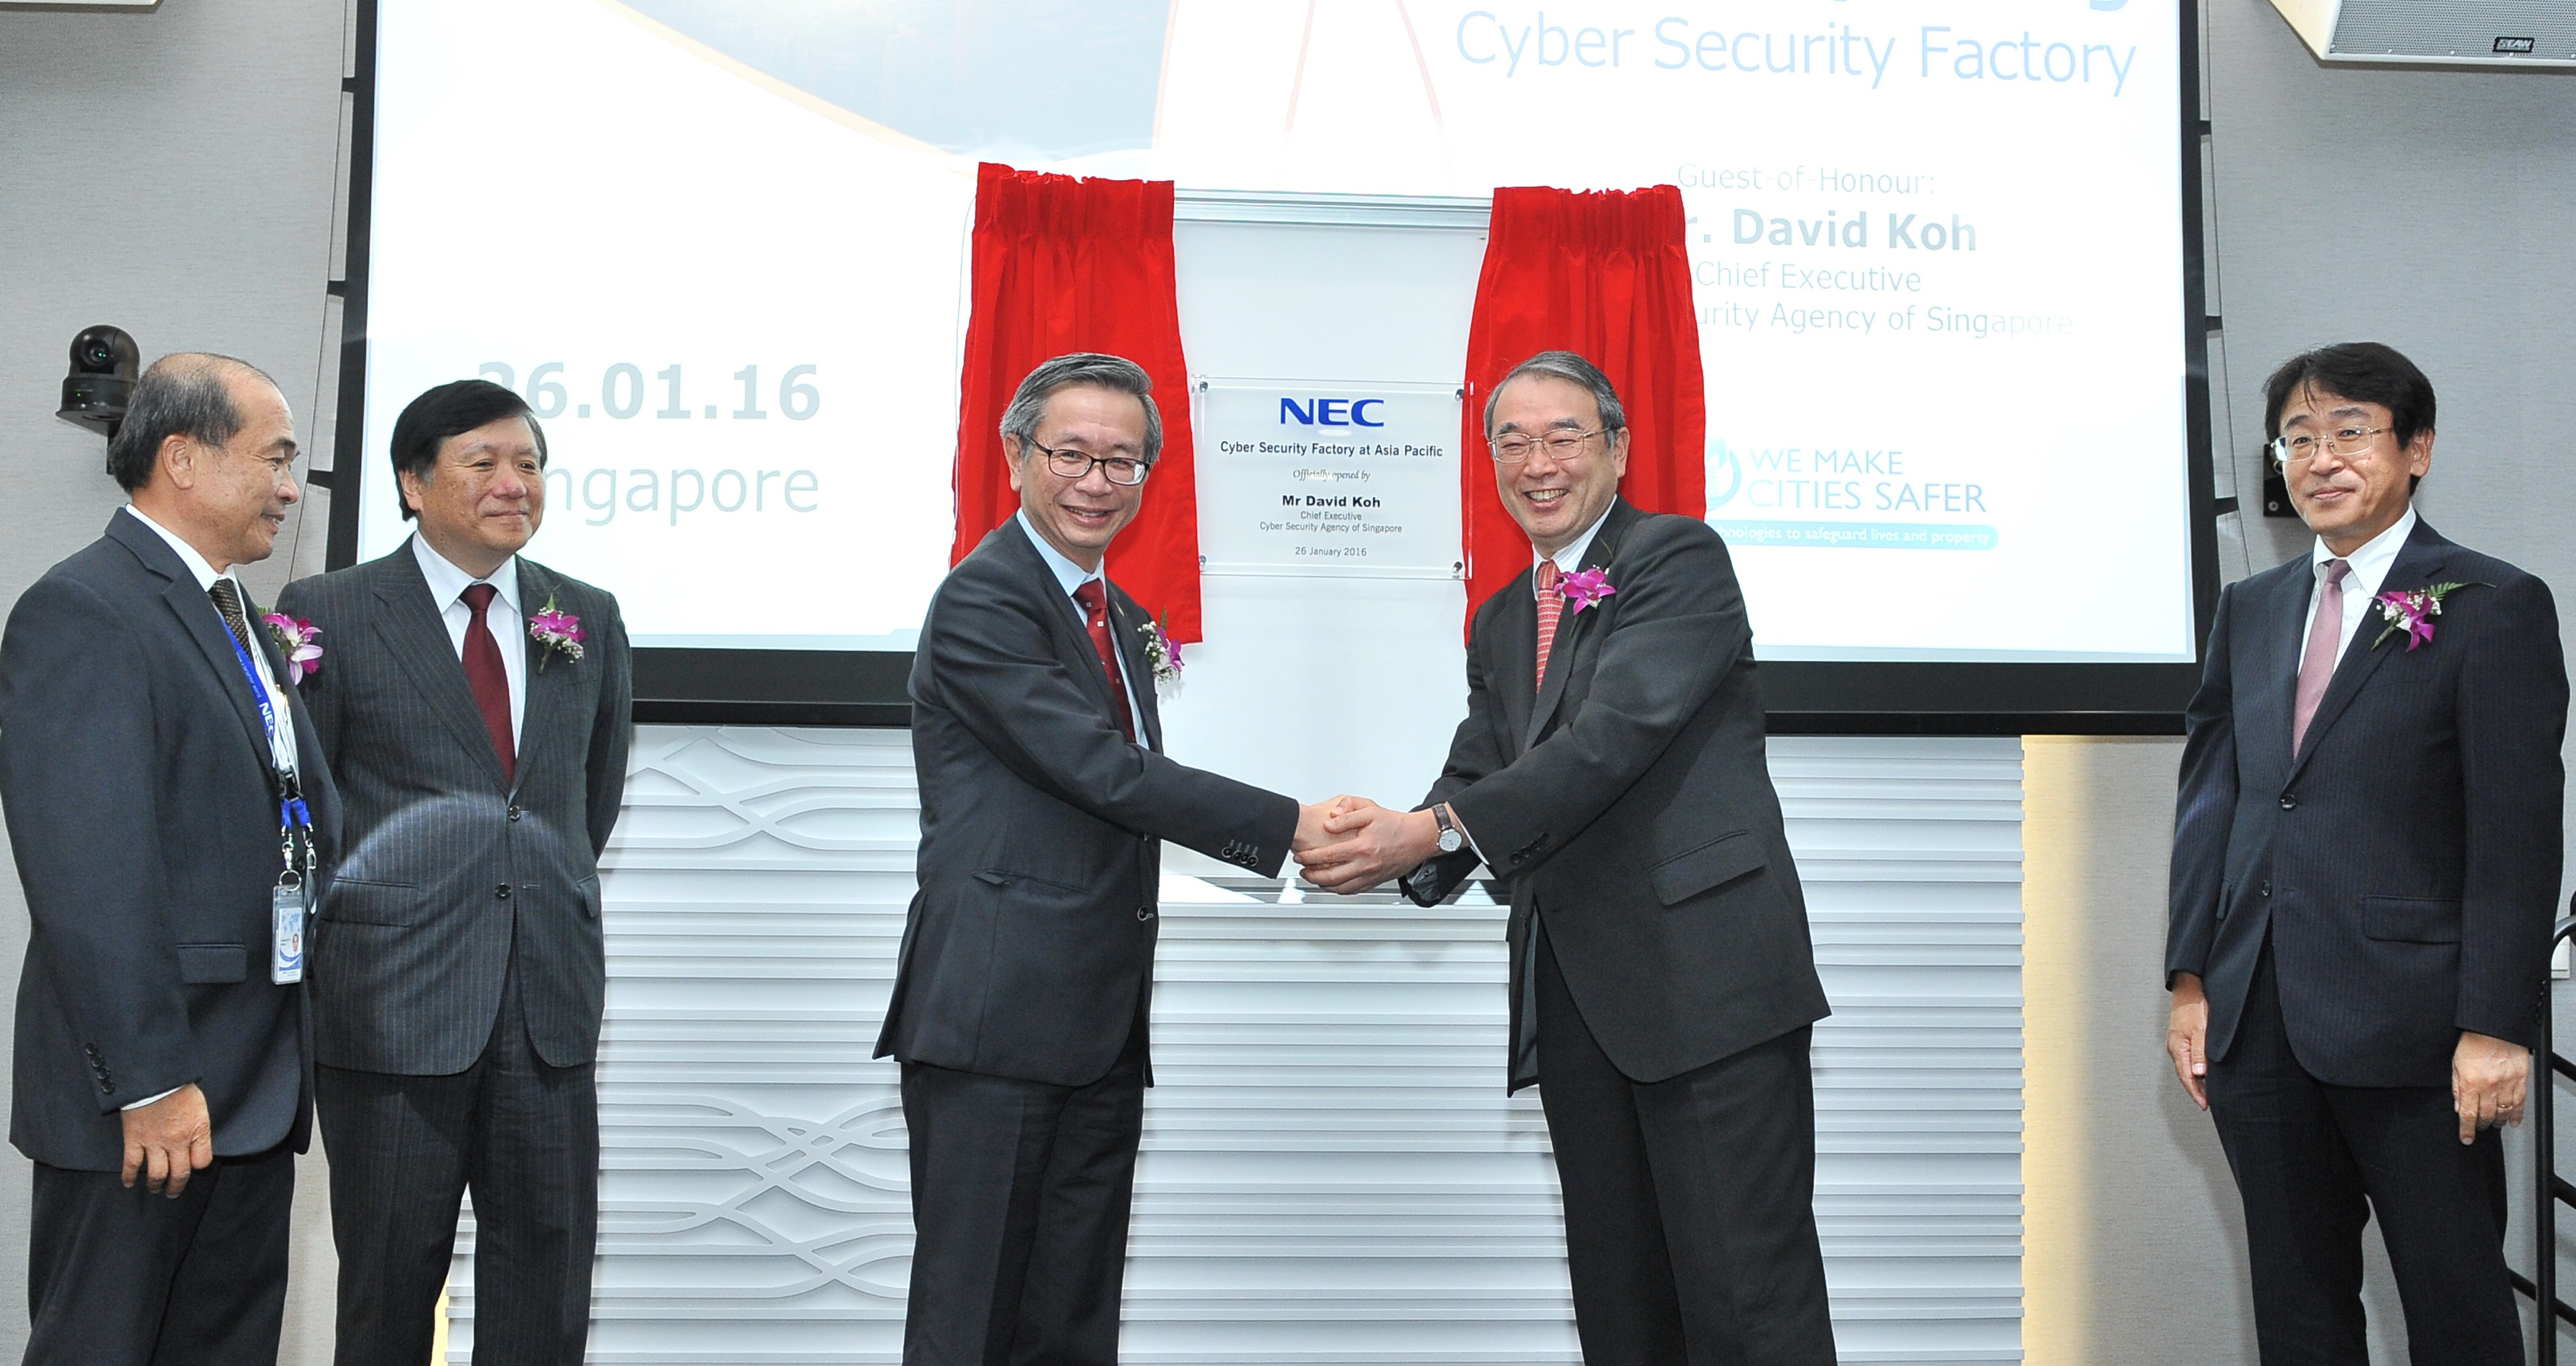 CE CSA delivers opening remarks at NEC's Cyber Security Factory Grand Opening